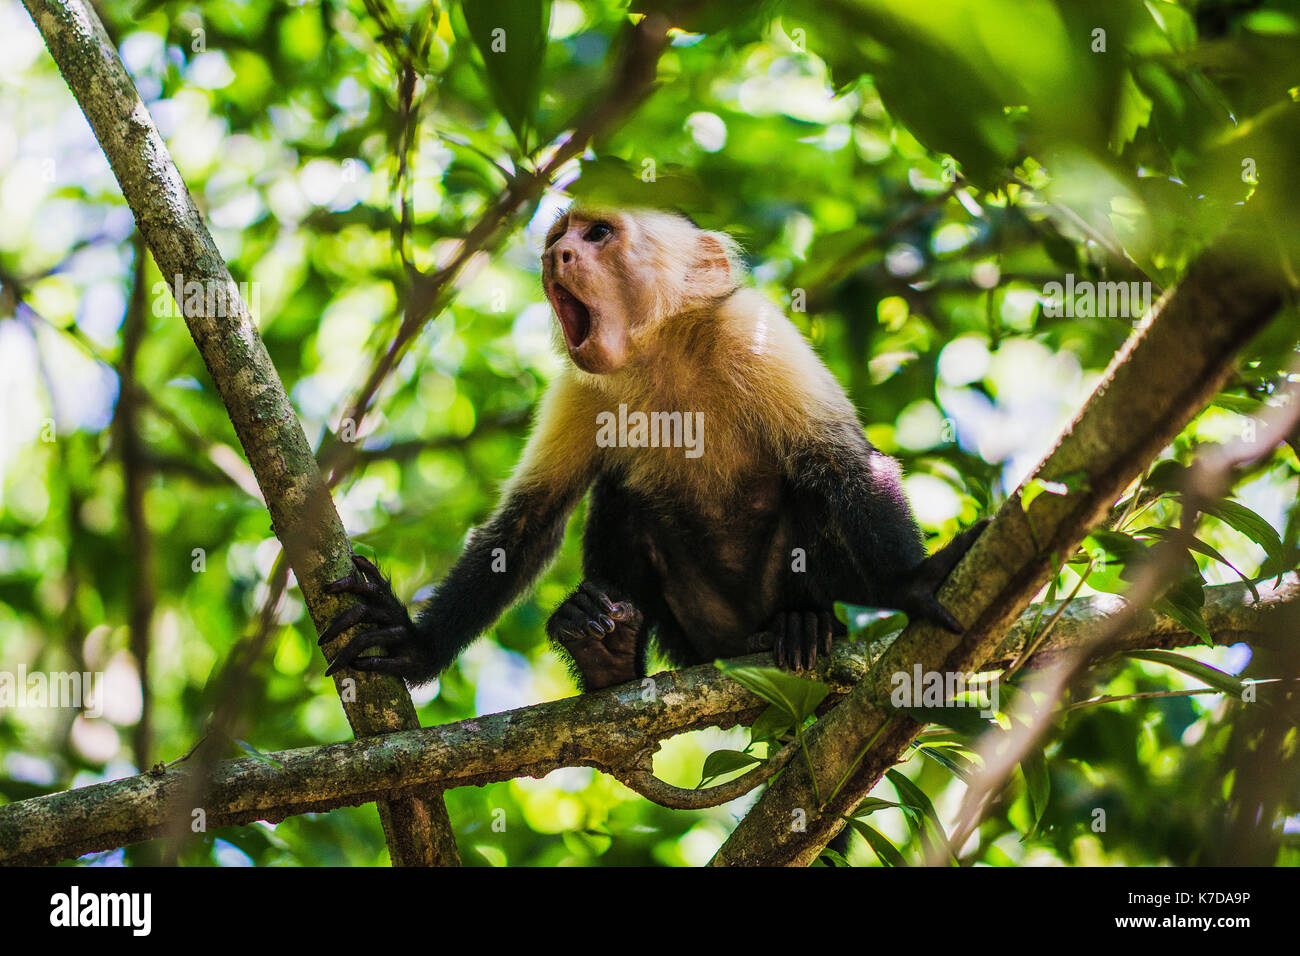 Low angle view of Wild capuchin monkey yawning while sitting on branch - Stock Image